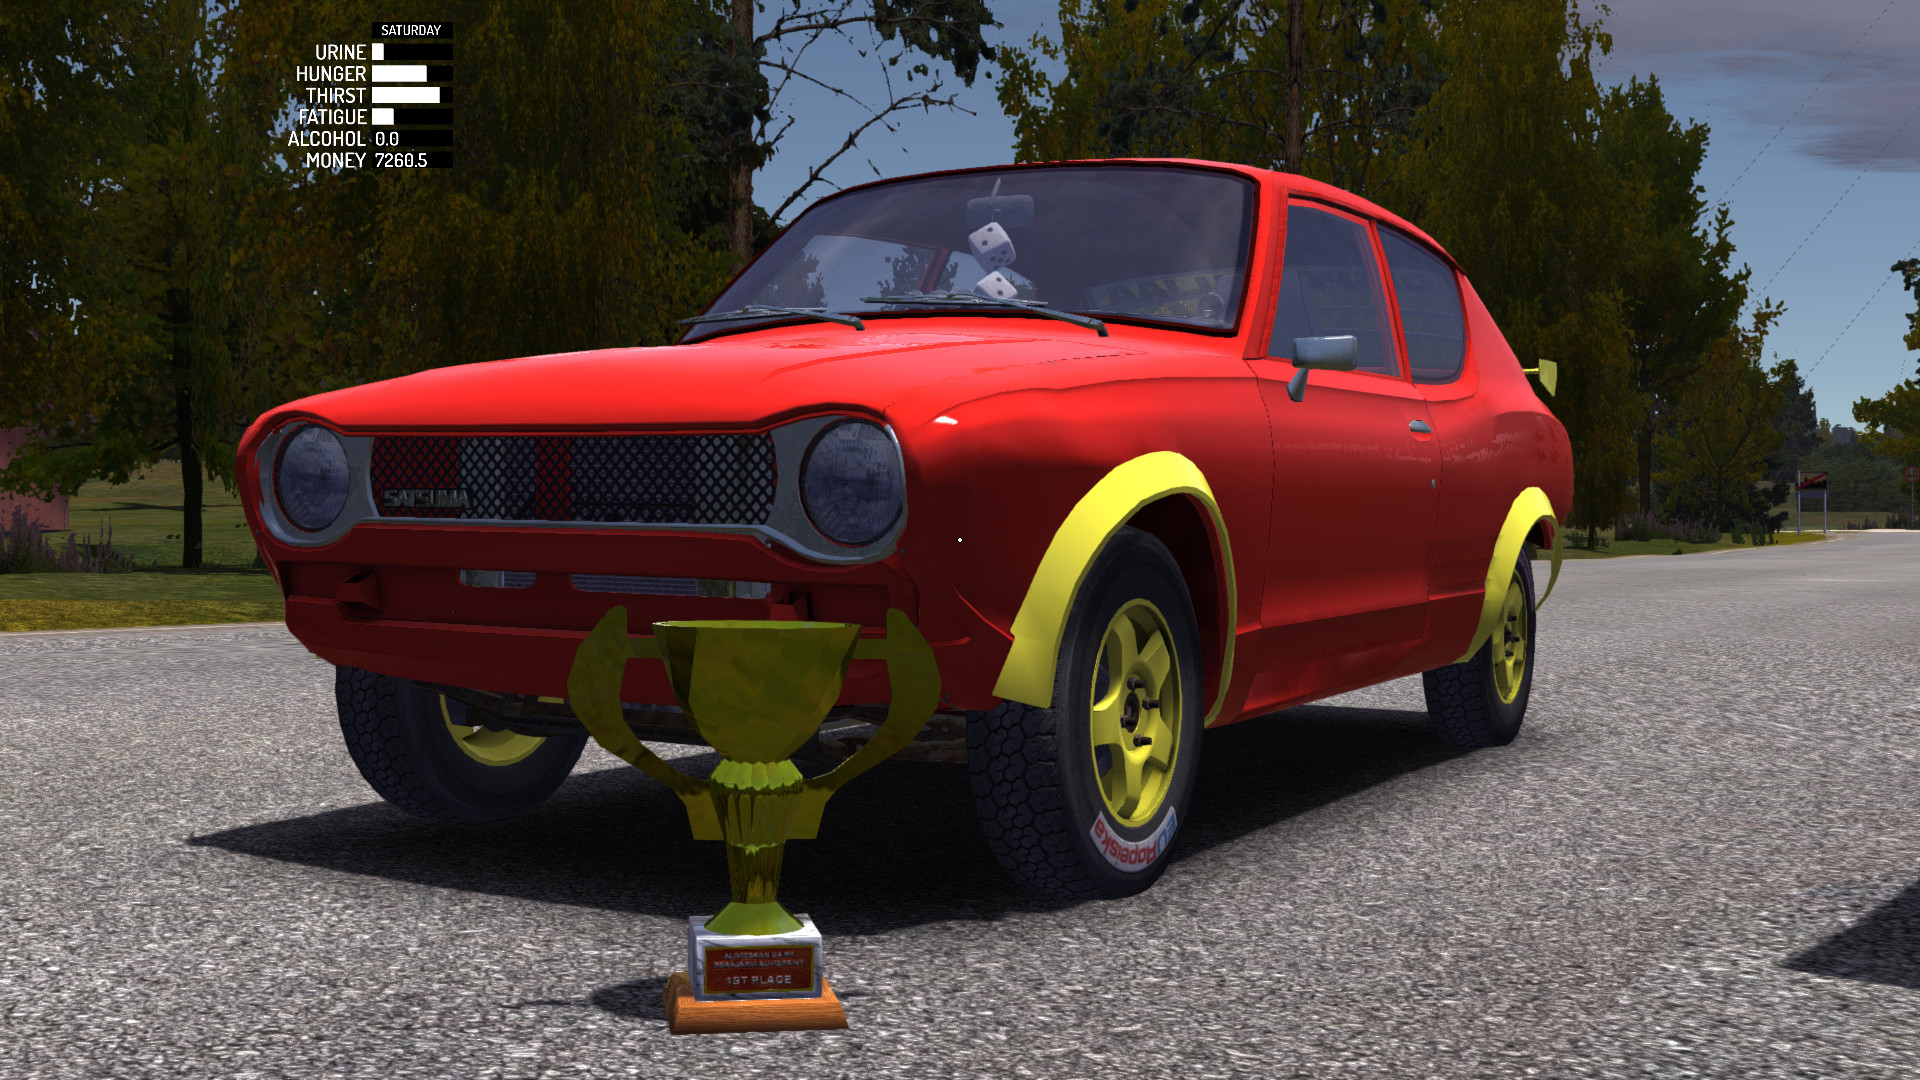 My Summer Car Screenshot 2